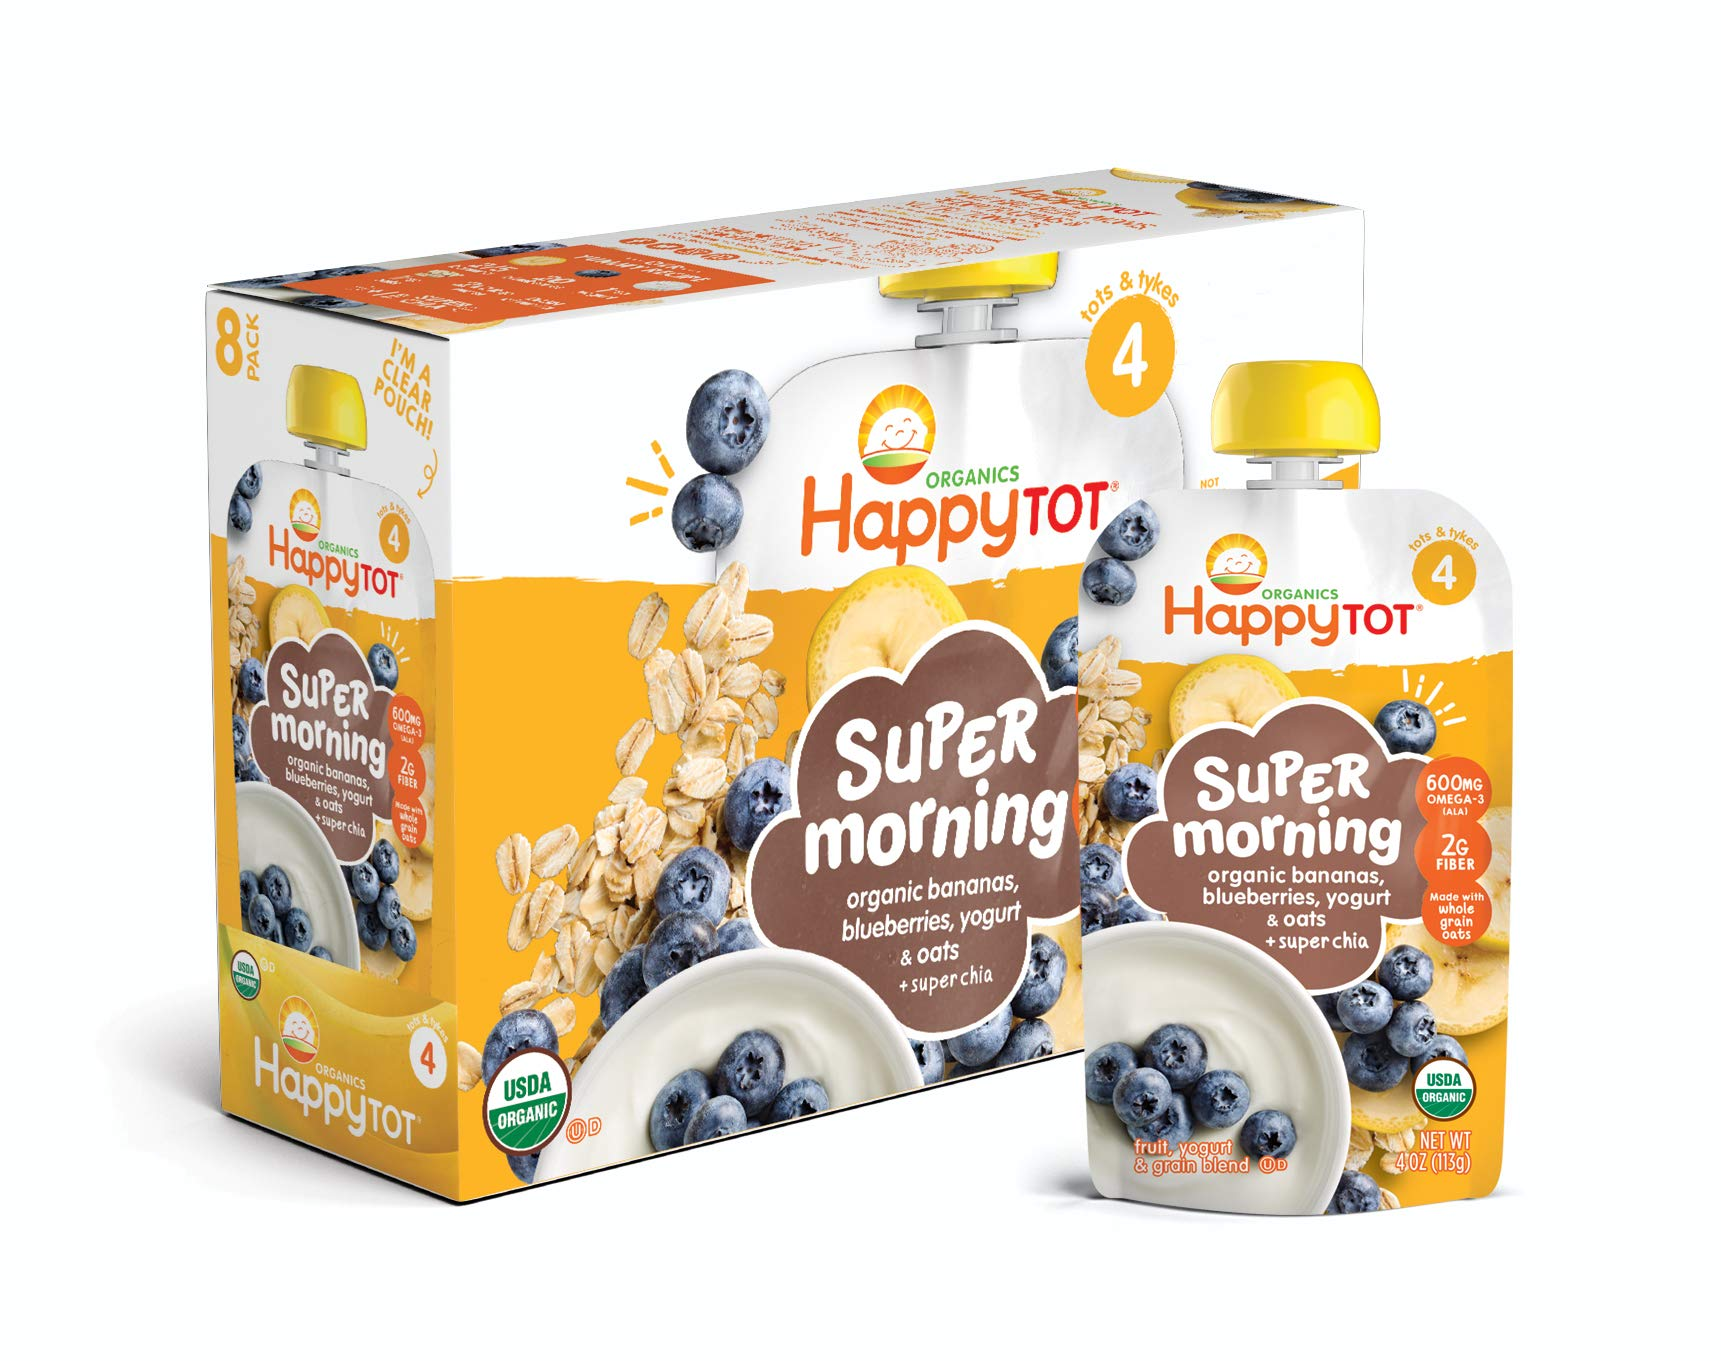 Happy Tot Organic Stage 4 Super Morning Organic Bananas Blueberries Yogurt & Oats + Super Chia, 4 Ounce Pouch (Pack of 8) (Packaging May Vary) by Happy Baby